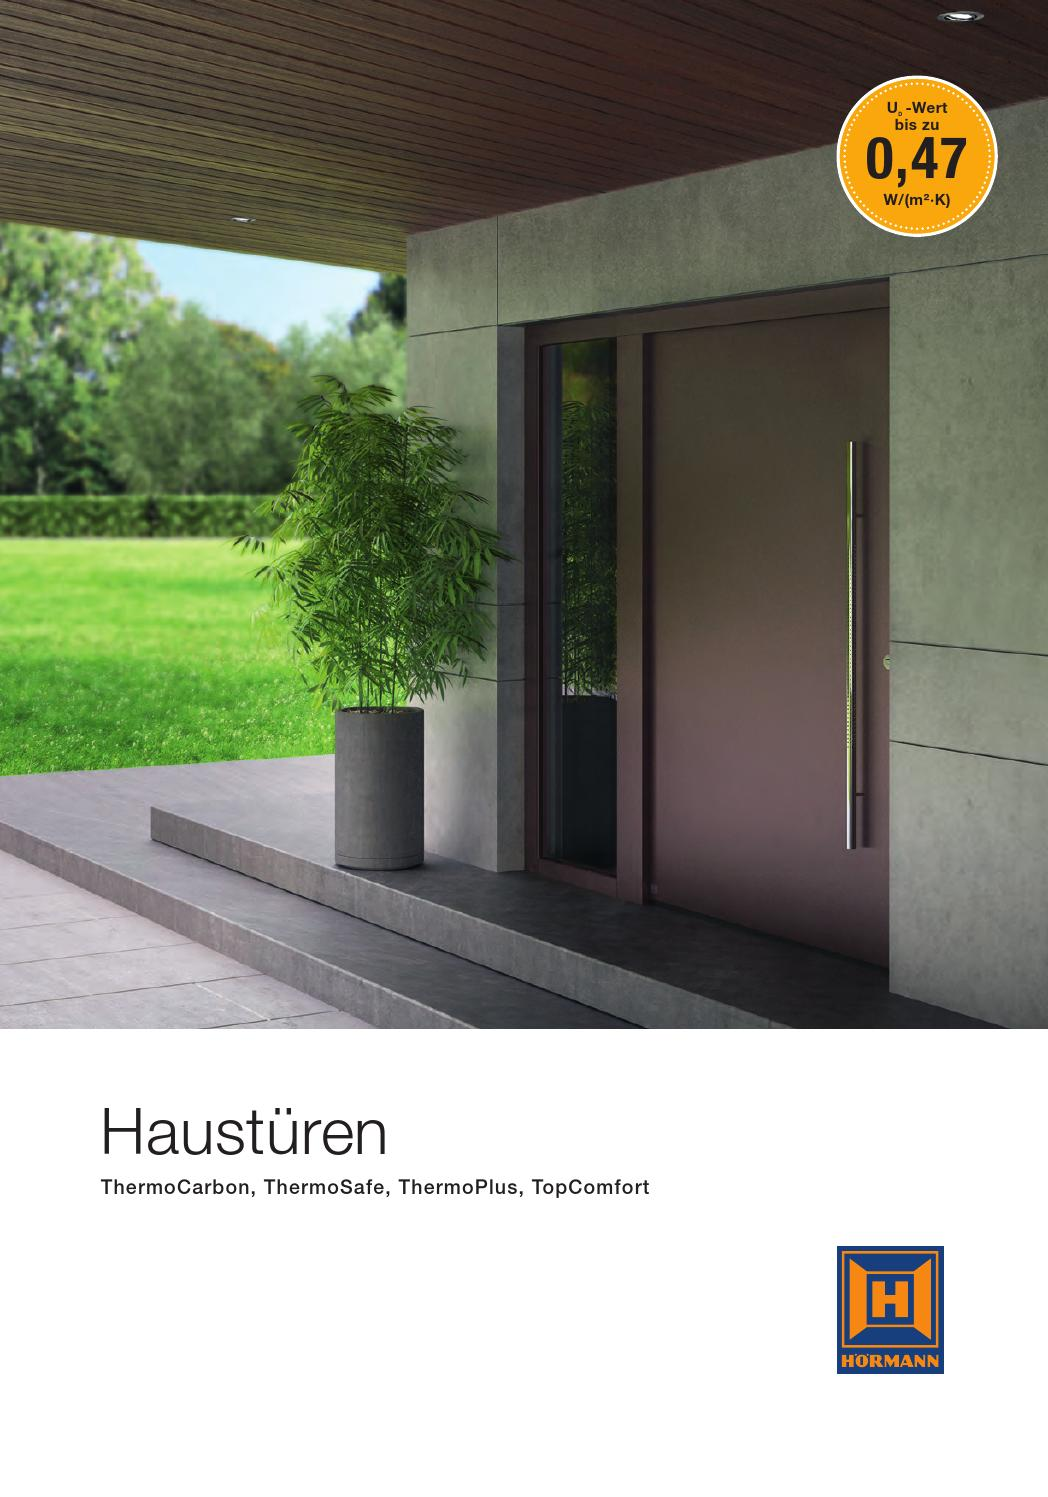 h rmann aluminium haust ren 2015 by werbeagentur 4c media. Black Bedroom Furniture Sets. Home Design Ideas